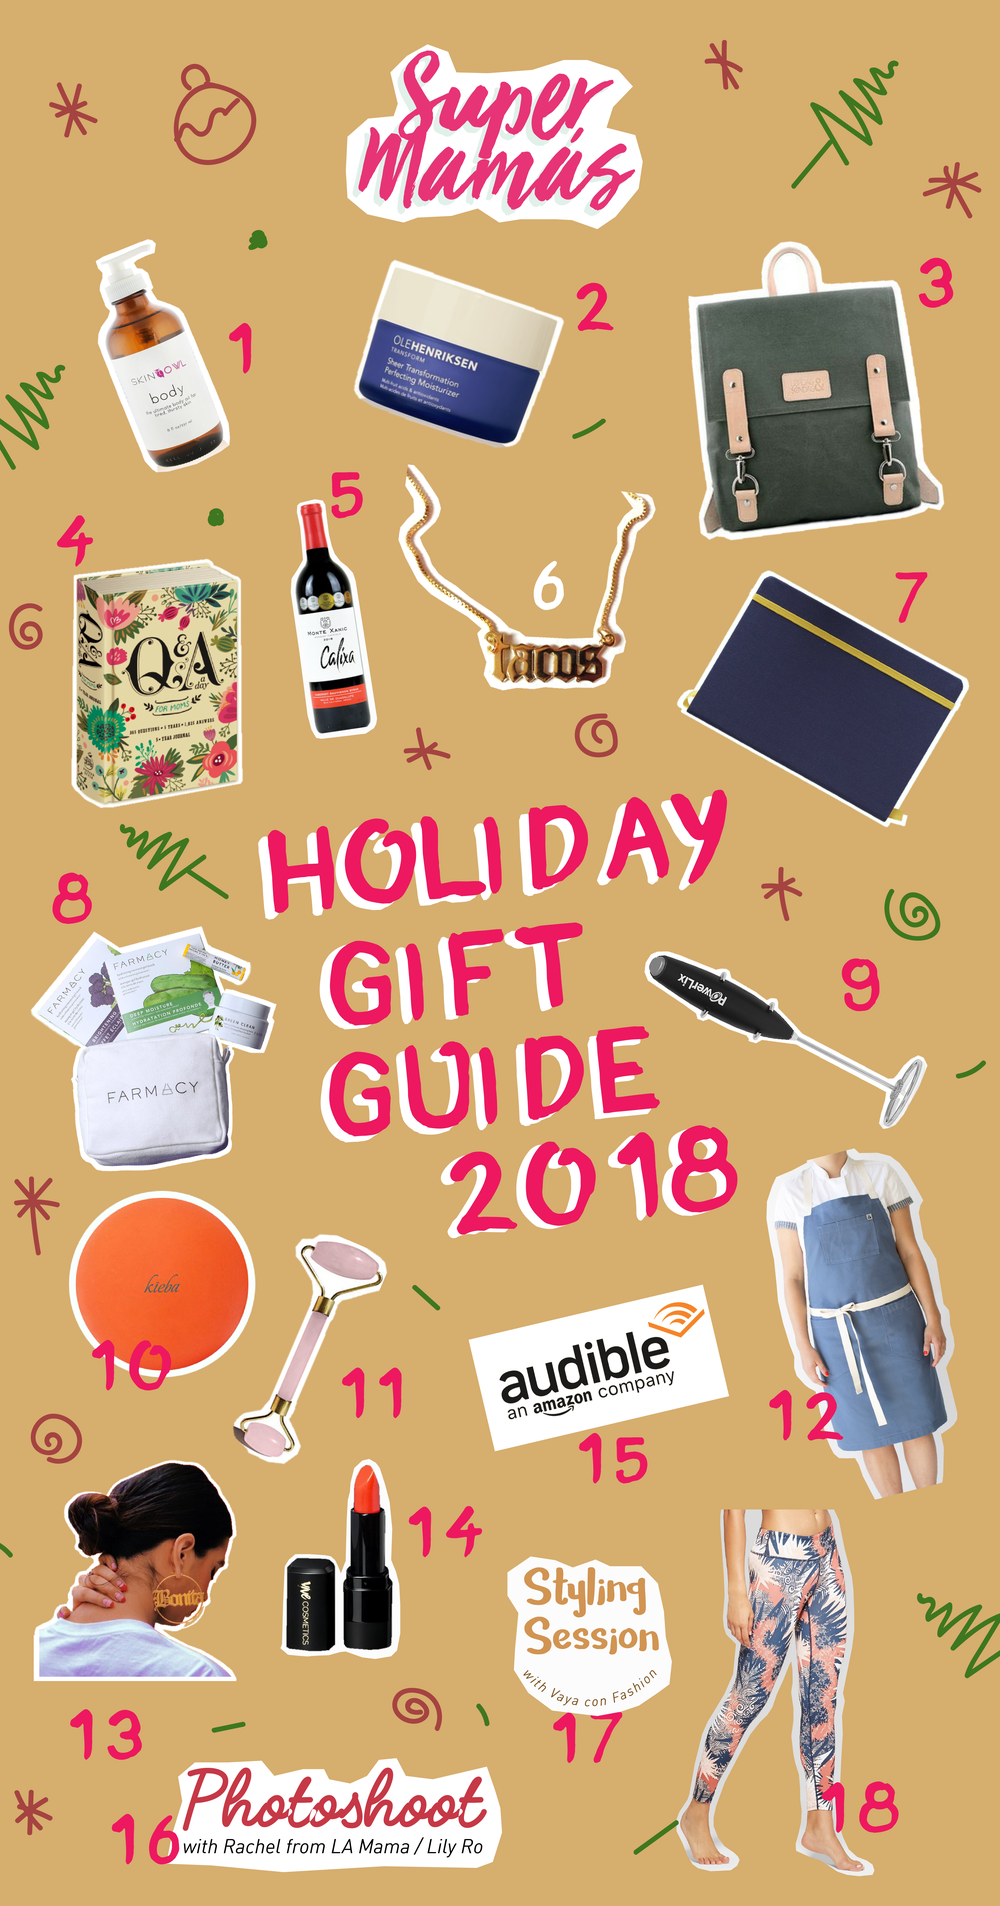 GIFT_GUIDE_SM-03.png